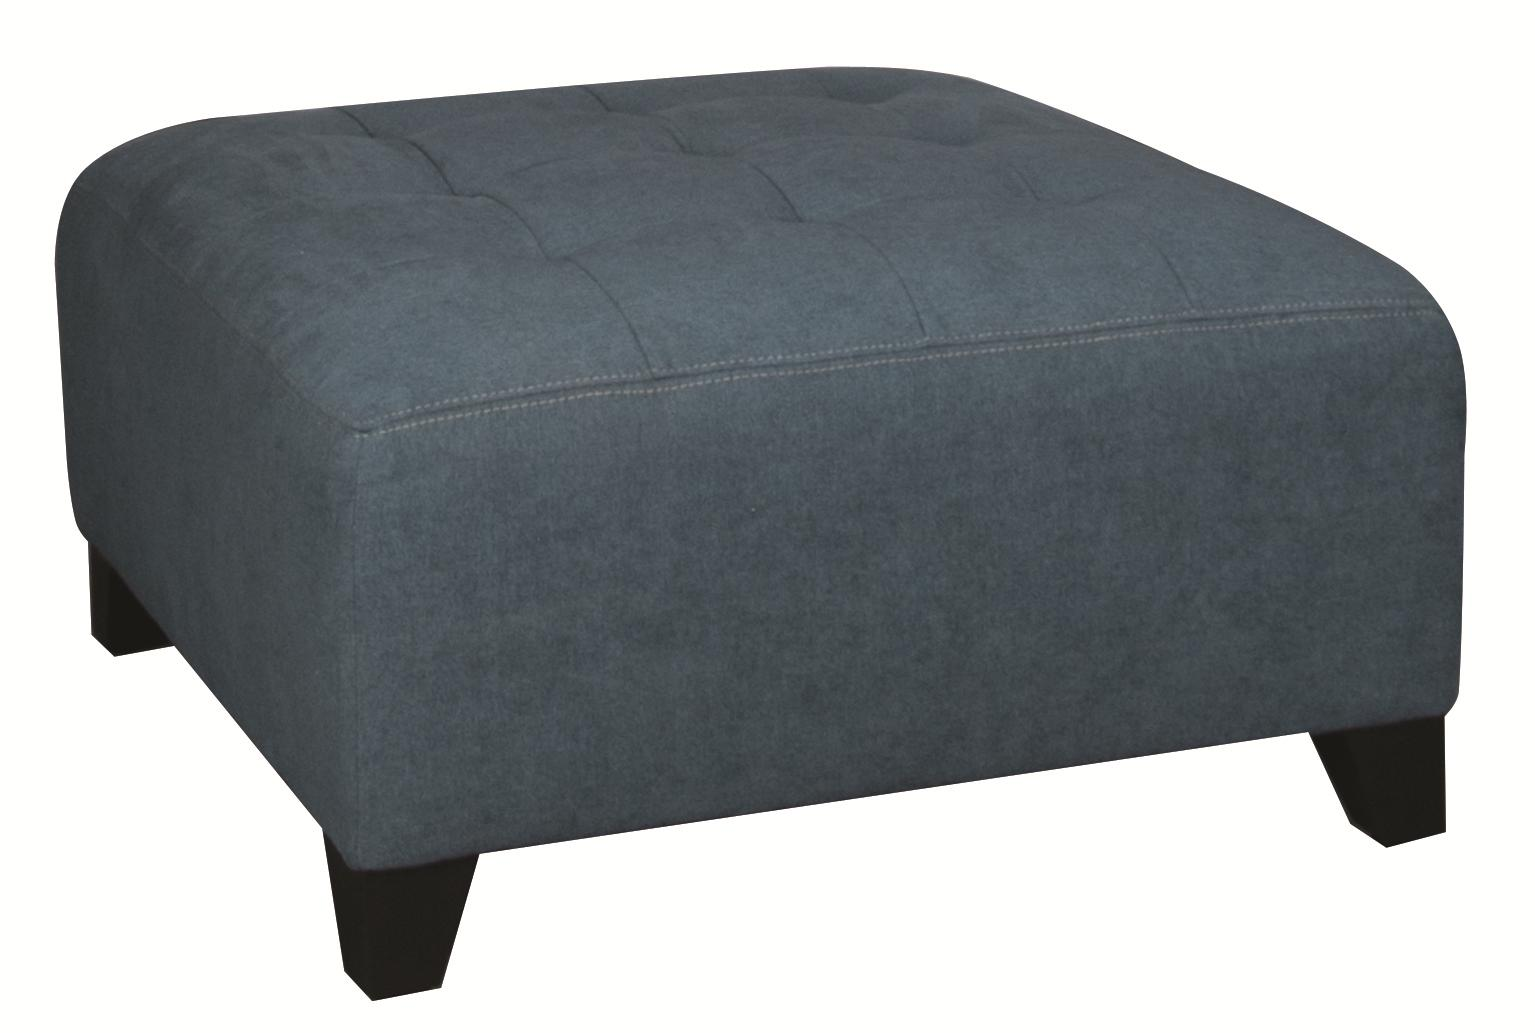 Morris Home Furnishings Emerson Emerson Ottoman - Item Number: 145817827